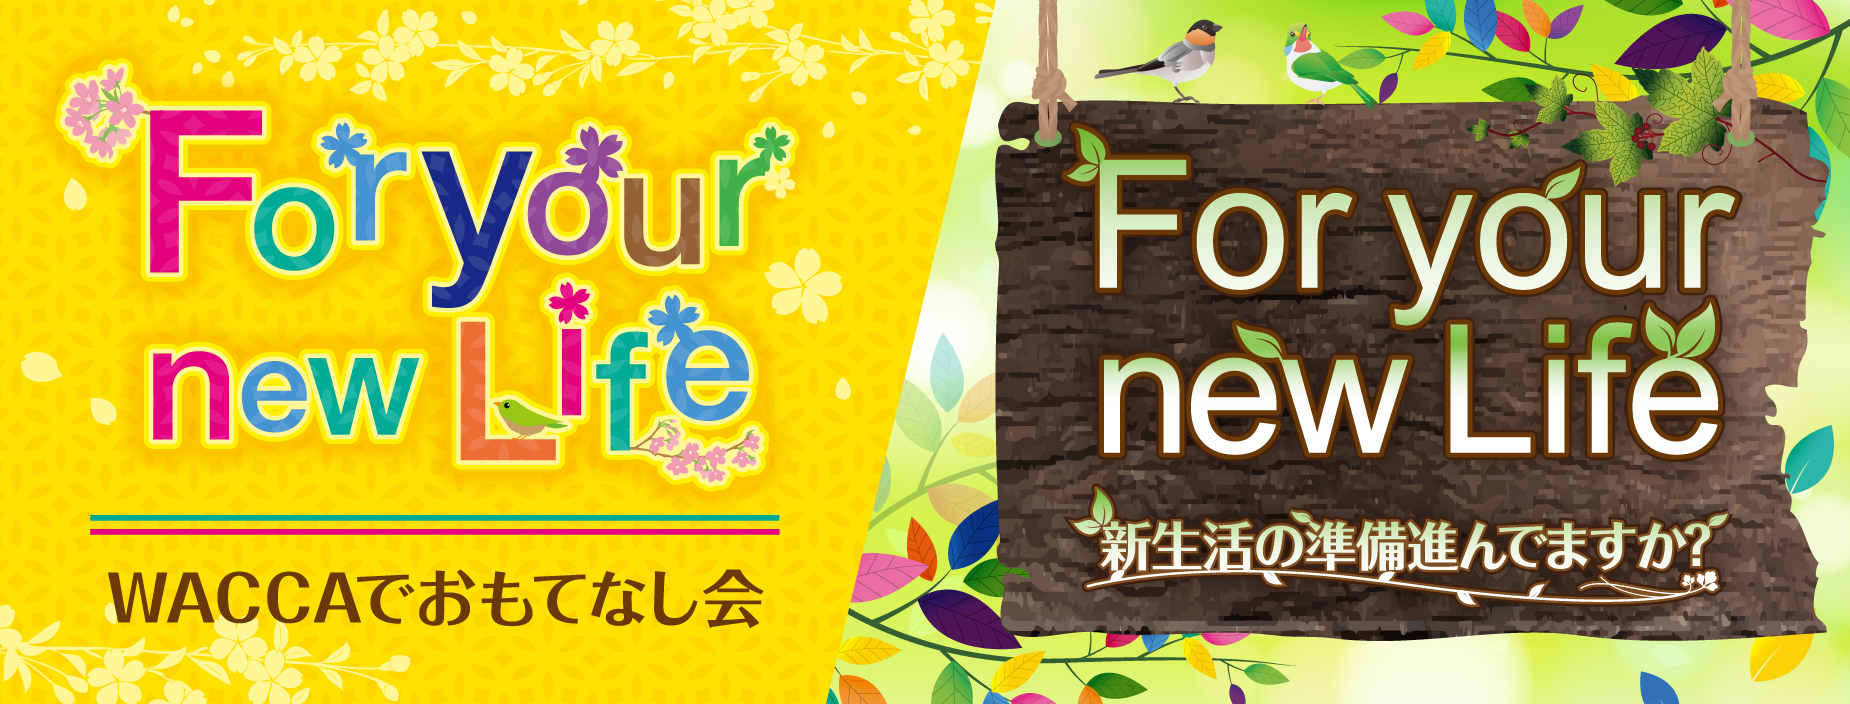 For your new life